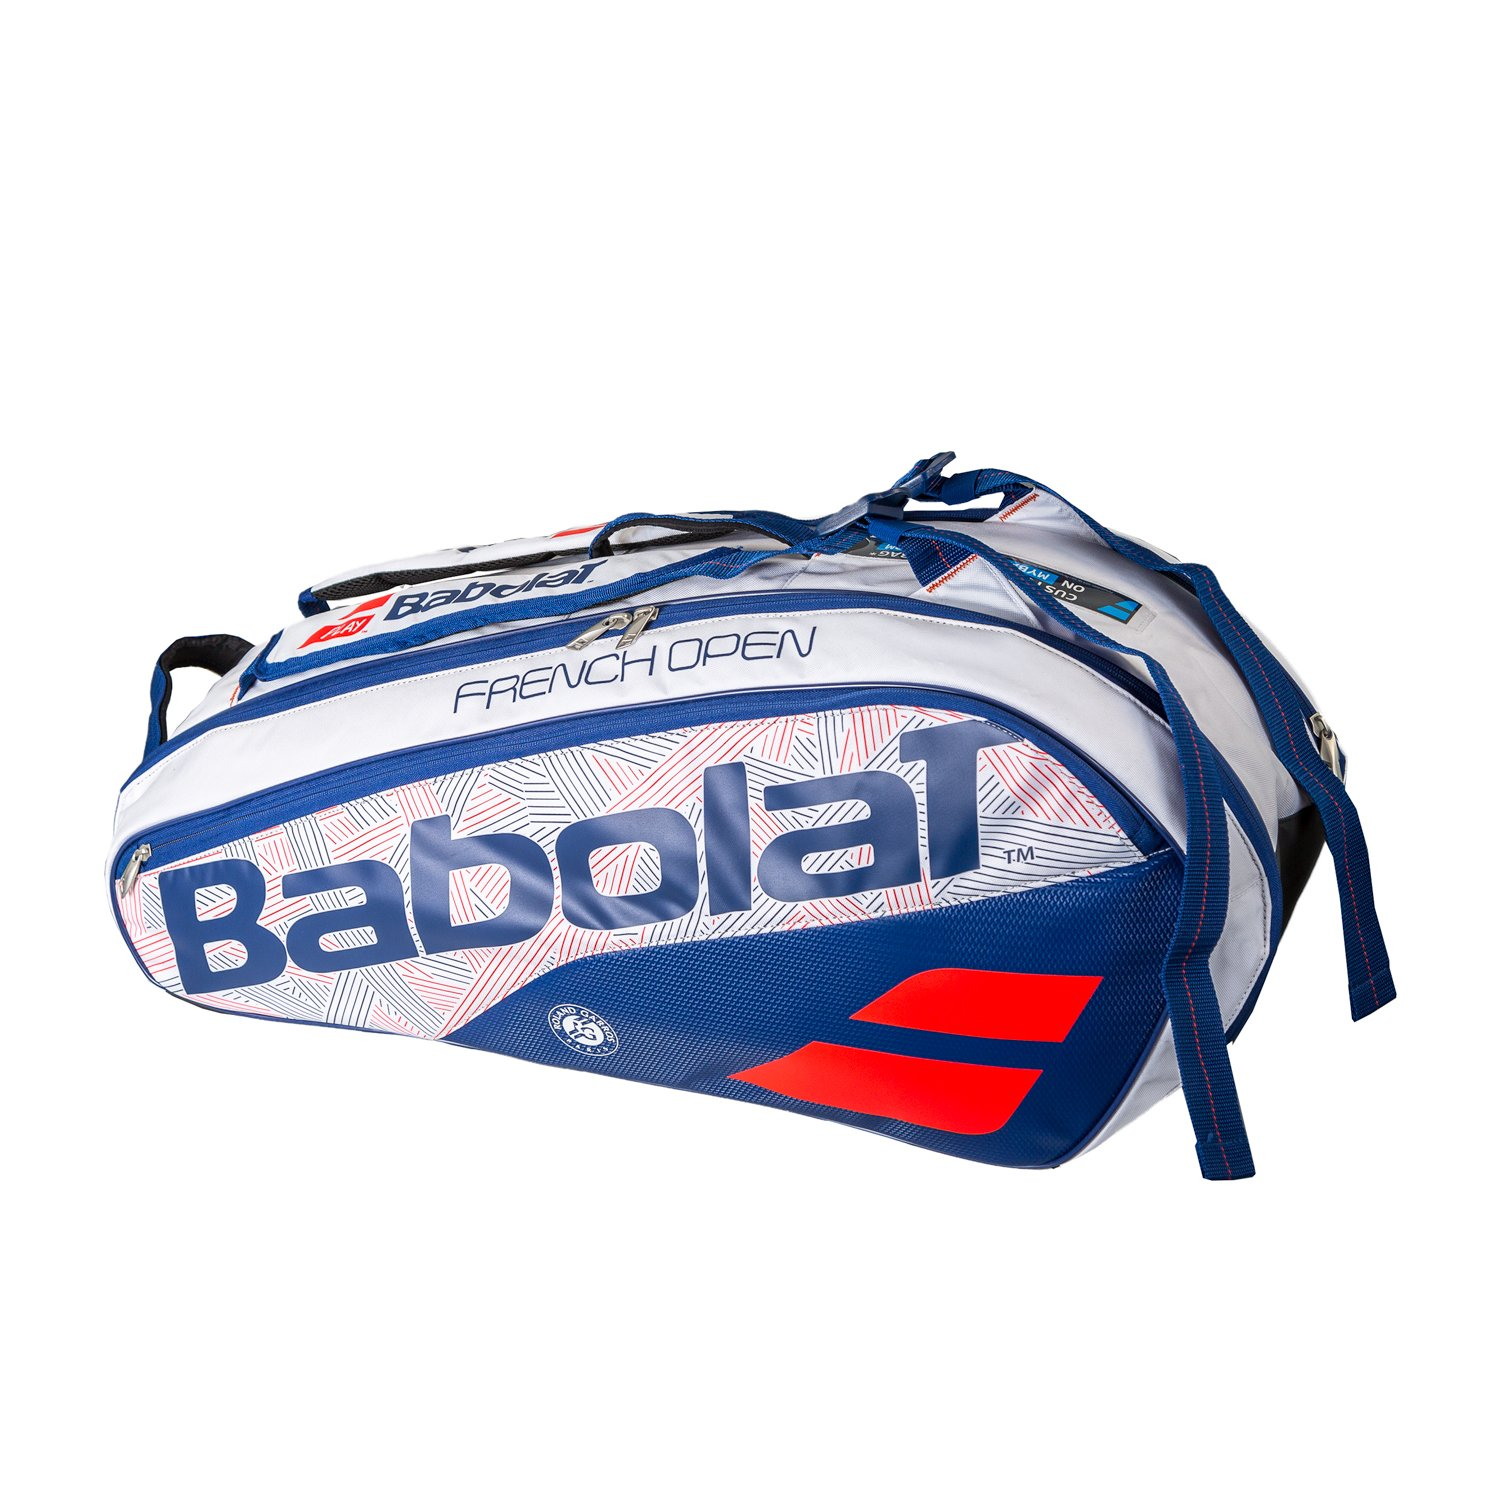 Babolat Pure French Open 6 Pack Tennis Bag White and Blue-(B751165-203)